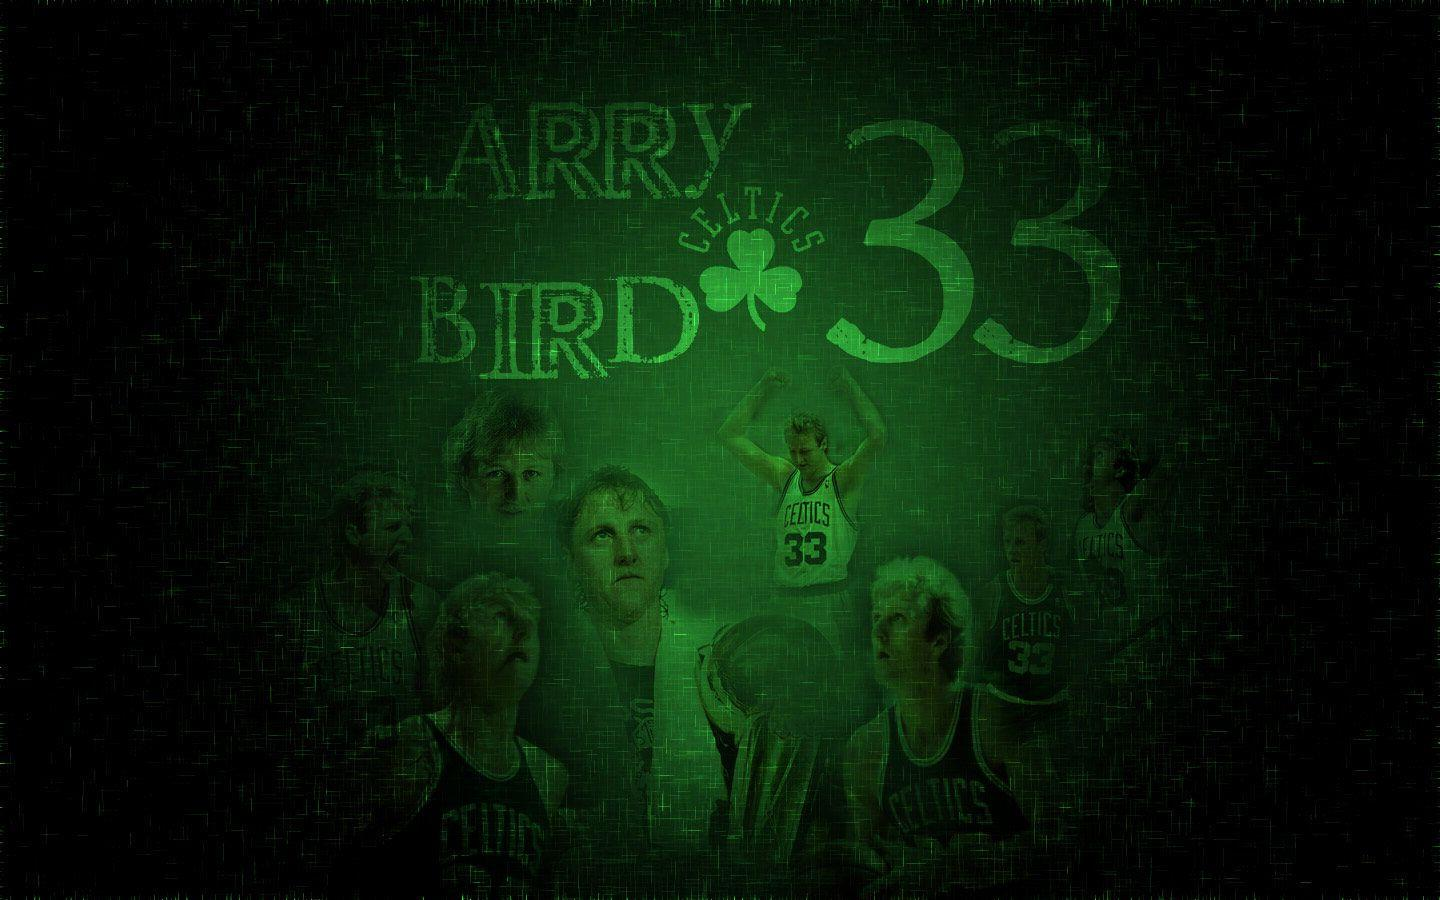 Larry Bird Wallpapers | Basketball Wallpapers at BasketWallpapers.com